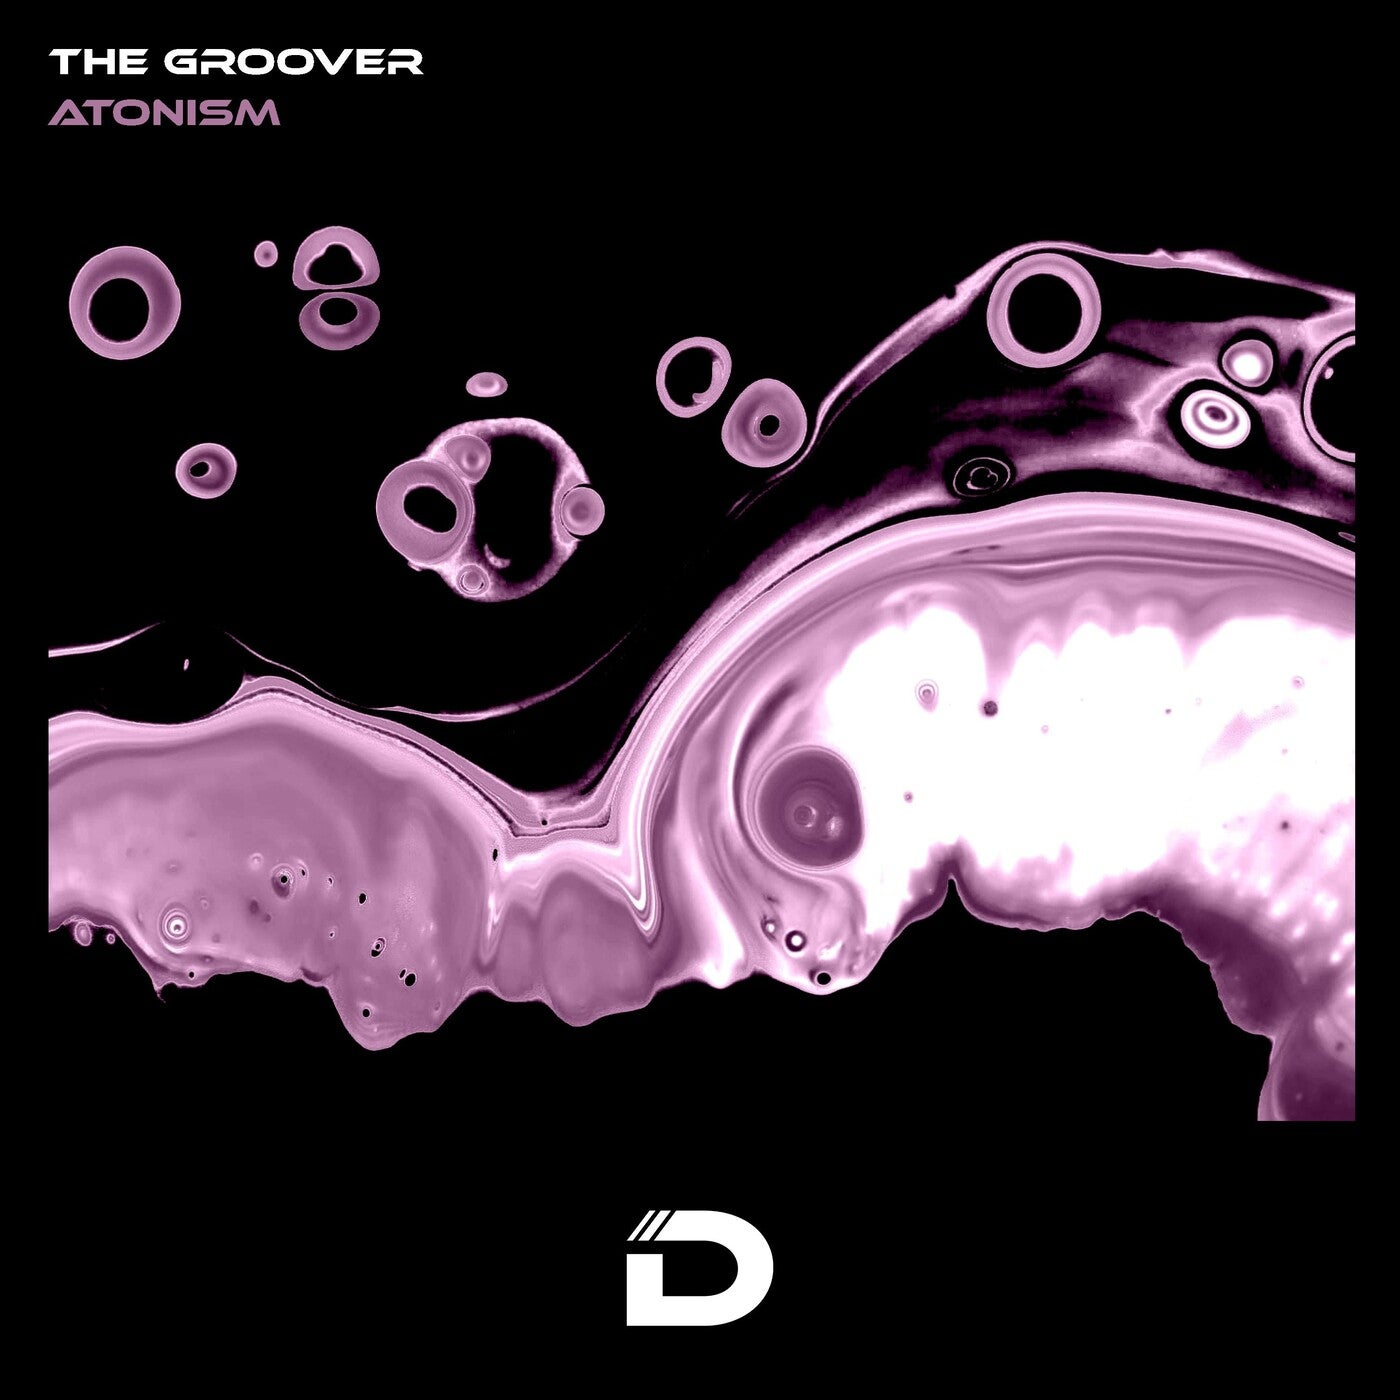 Atonism - The Groover (2021)